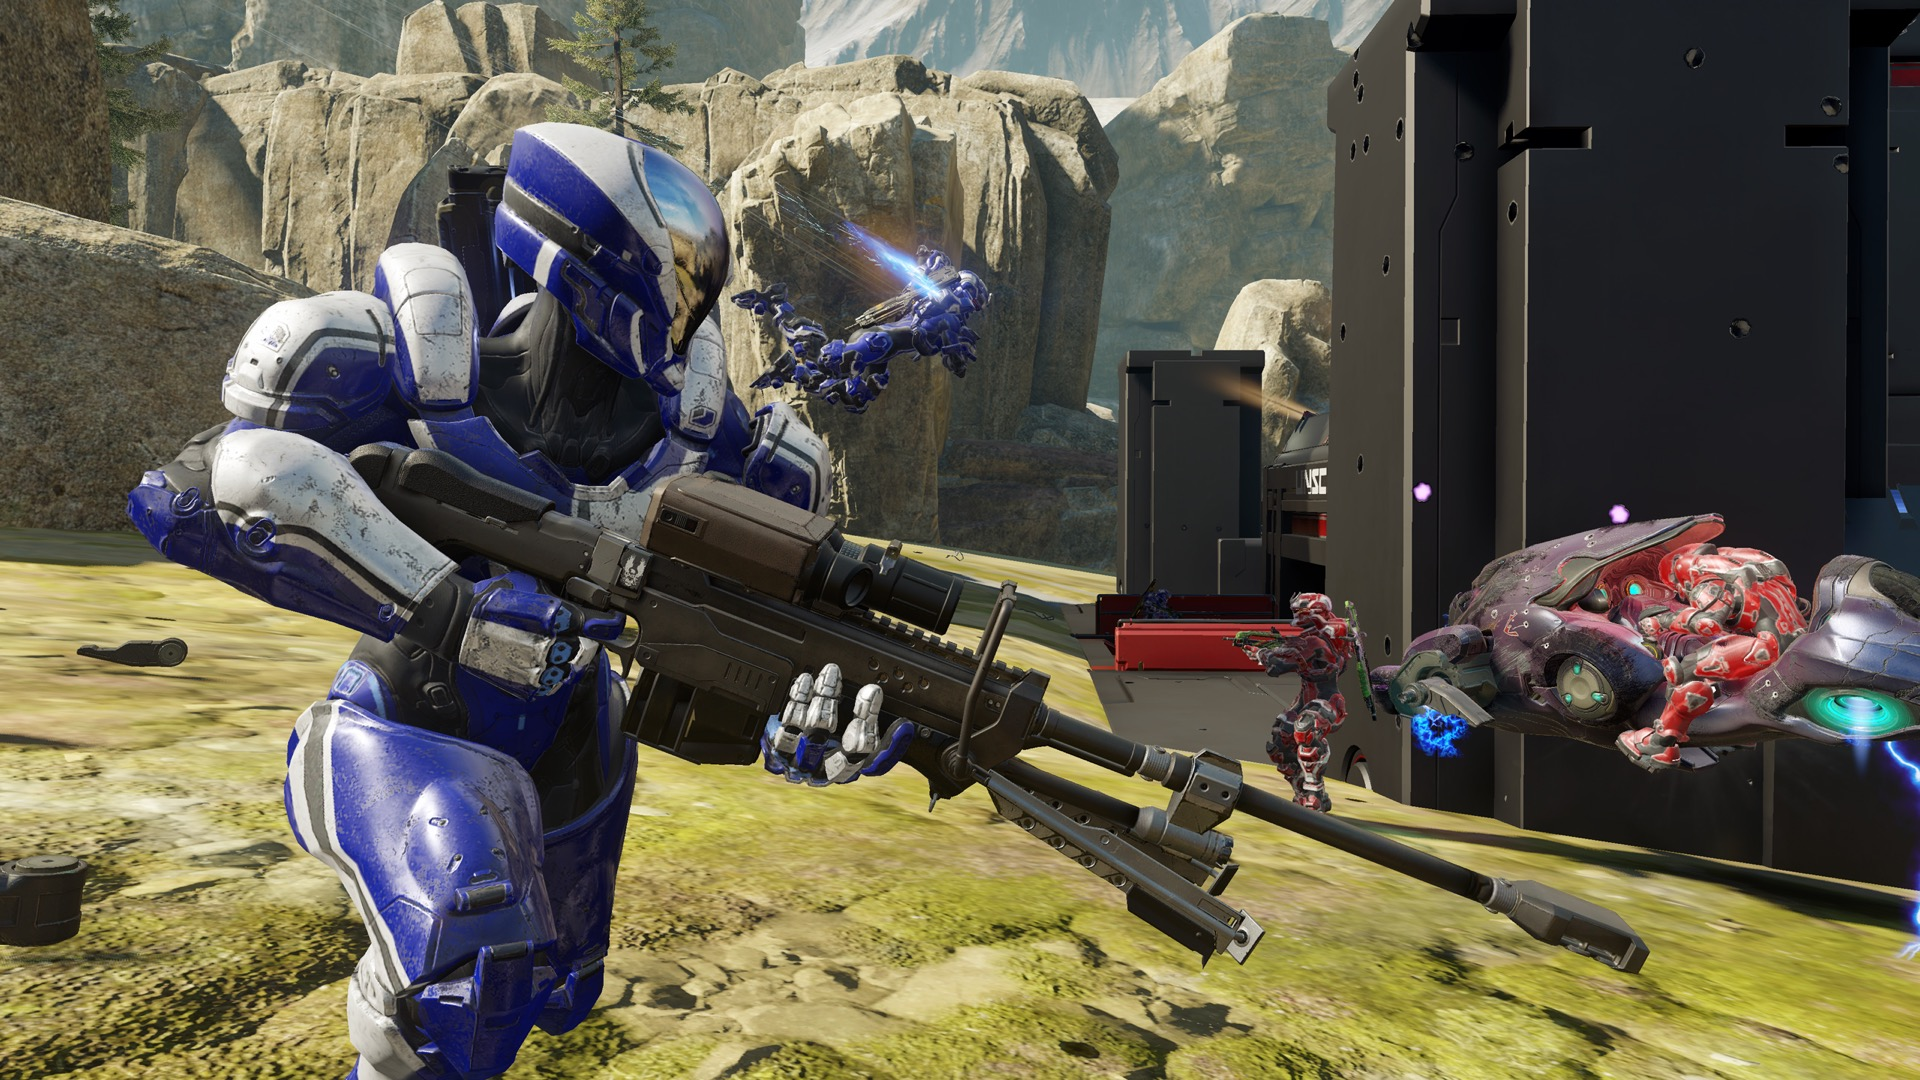 Microsoft and 343 Industries designed Halo 5: Guardians for eSports events like ESPN X Games.